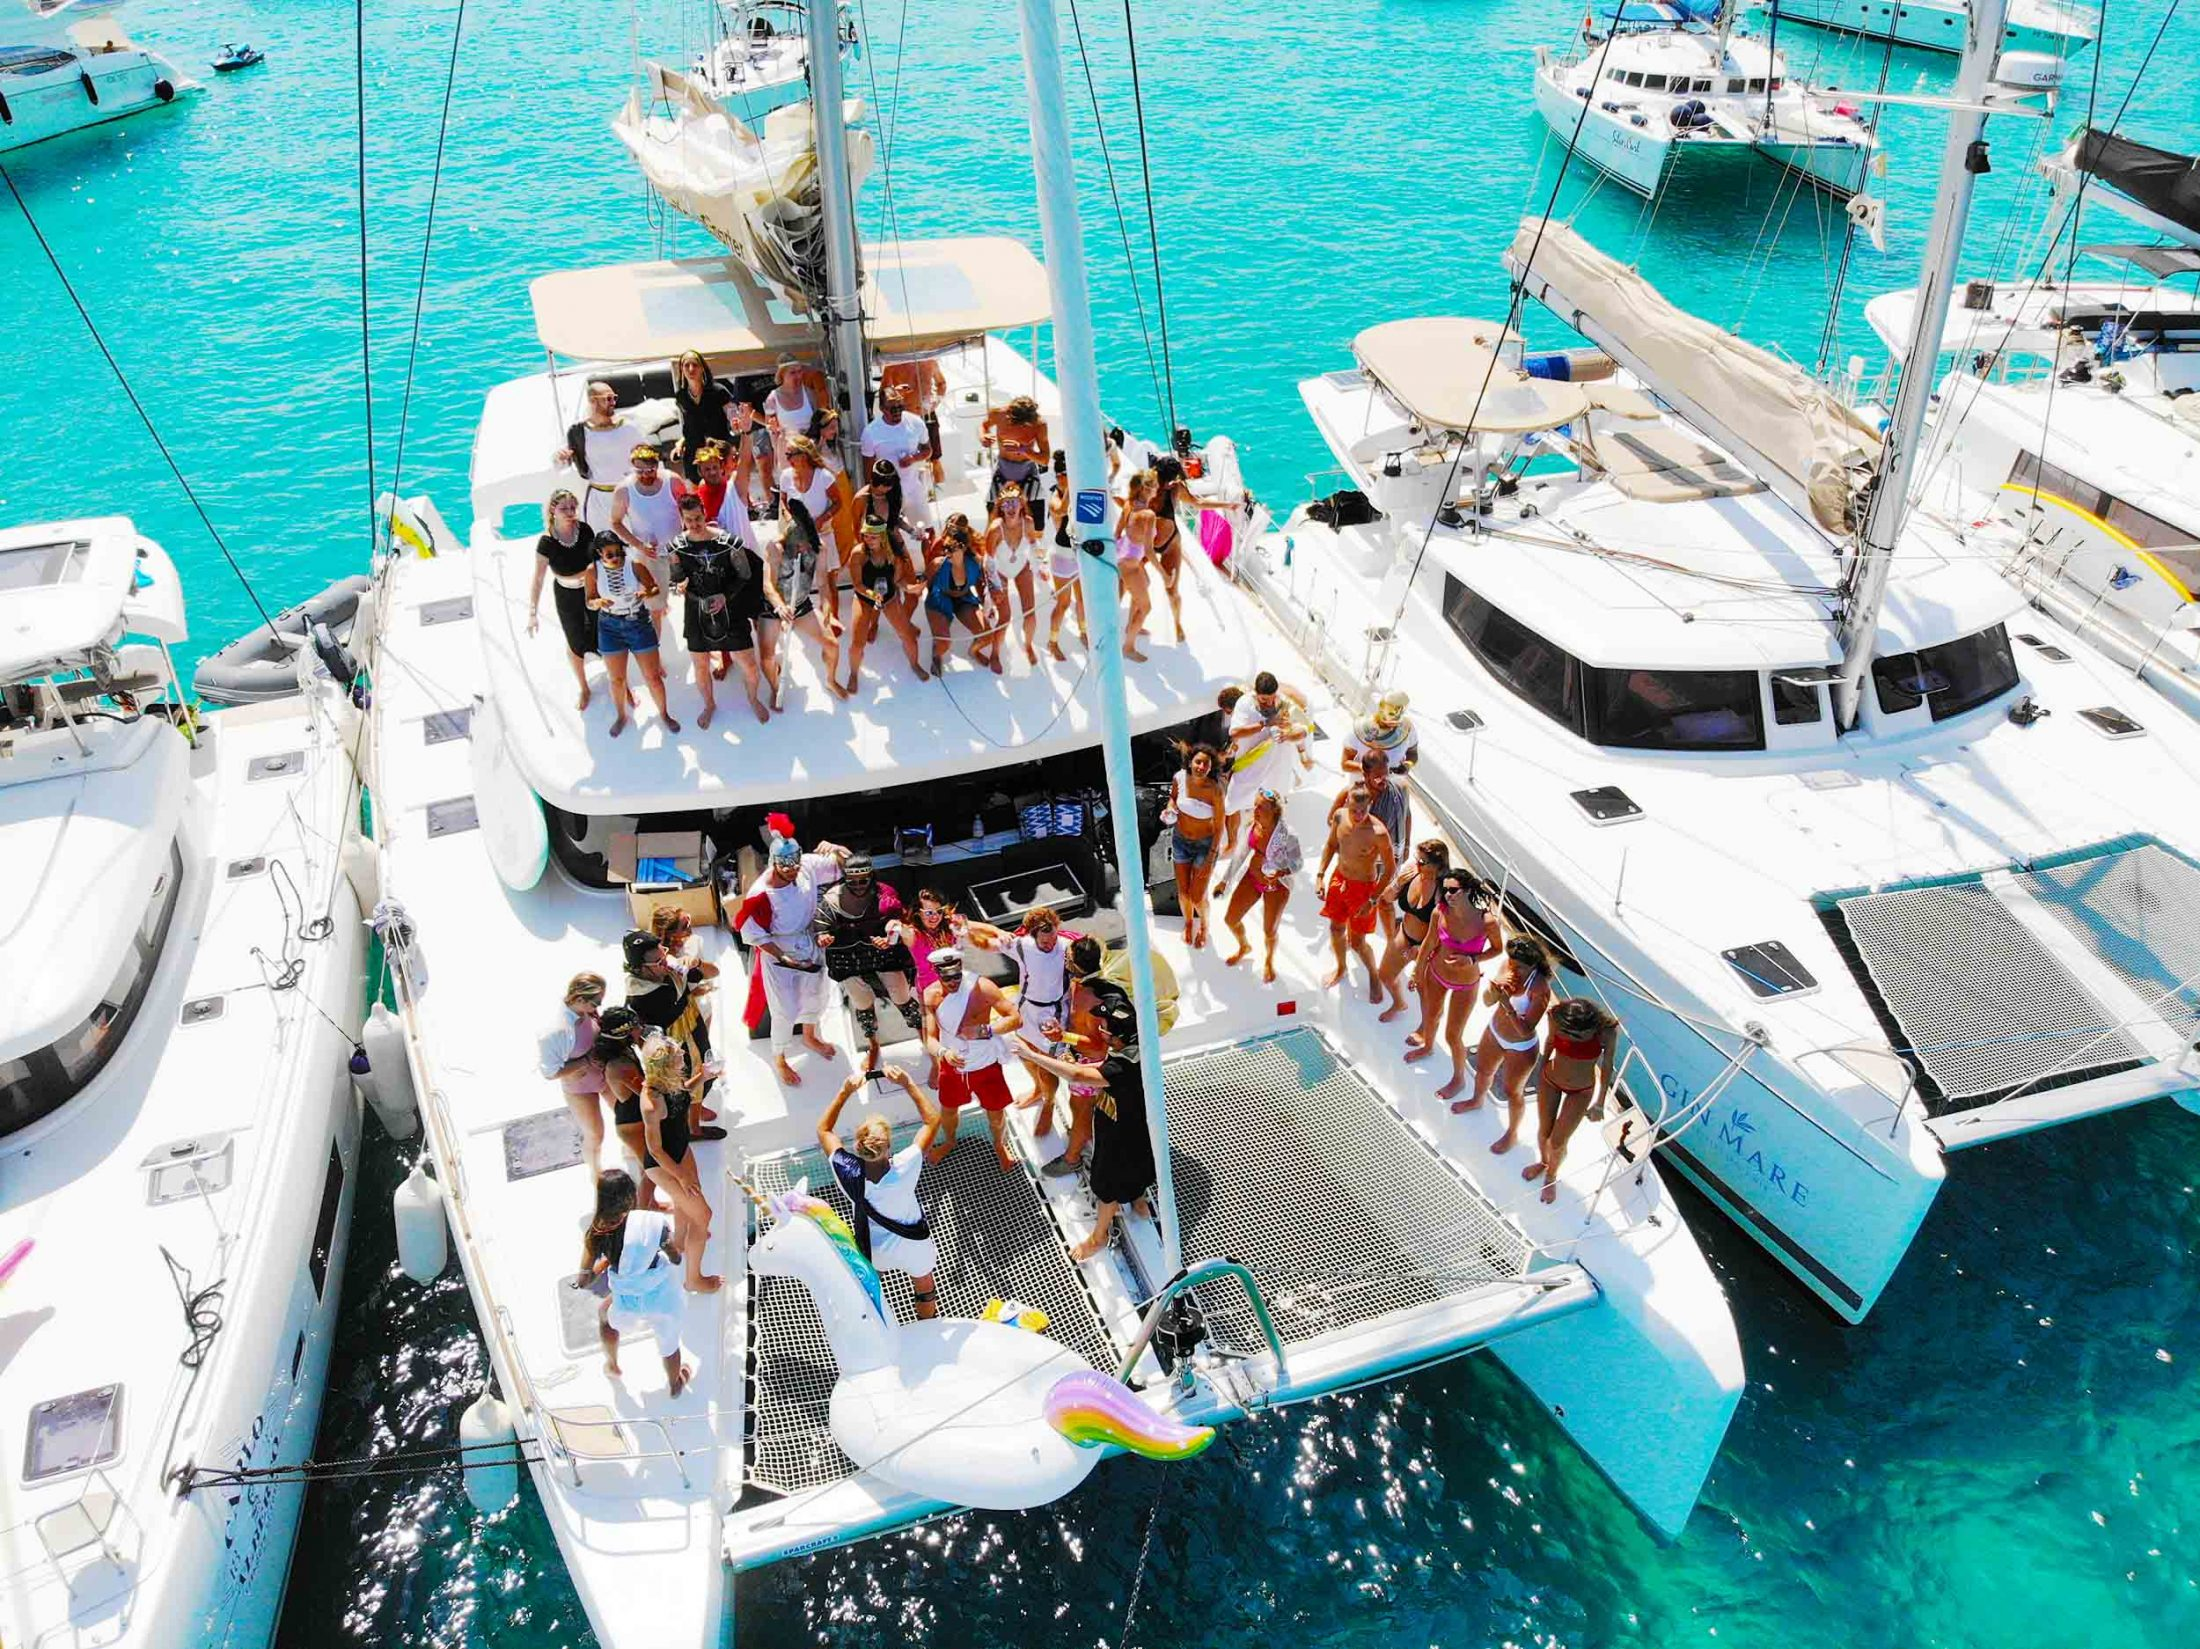 Sail and party together with friends from around the world